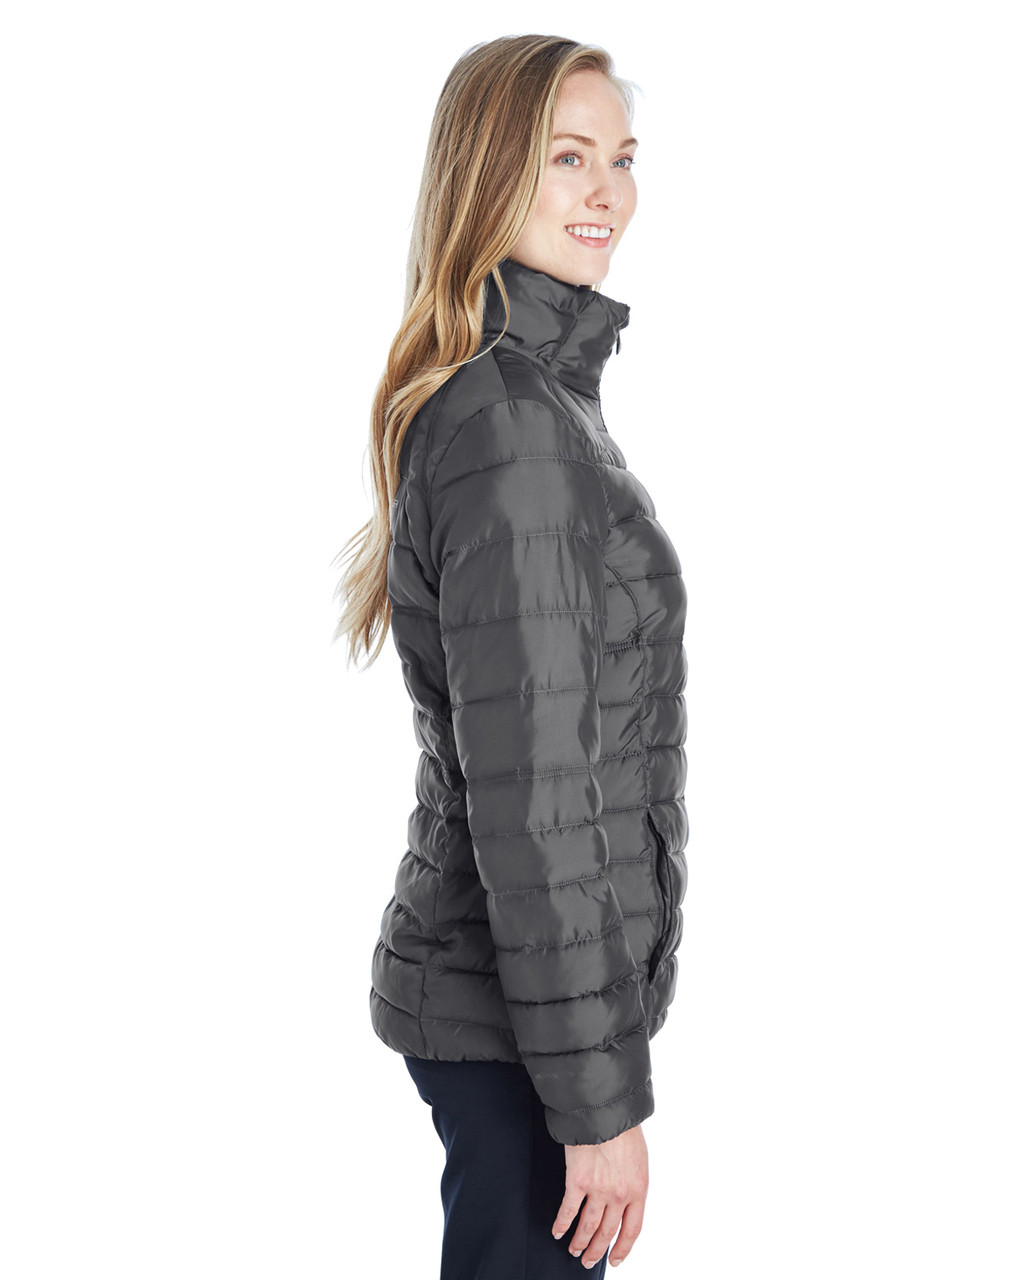 Polar/Alloy, Side - 187336 Spyder Ladies' Supreme Insulated Puffer Jacket | BlankClothing.ca